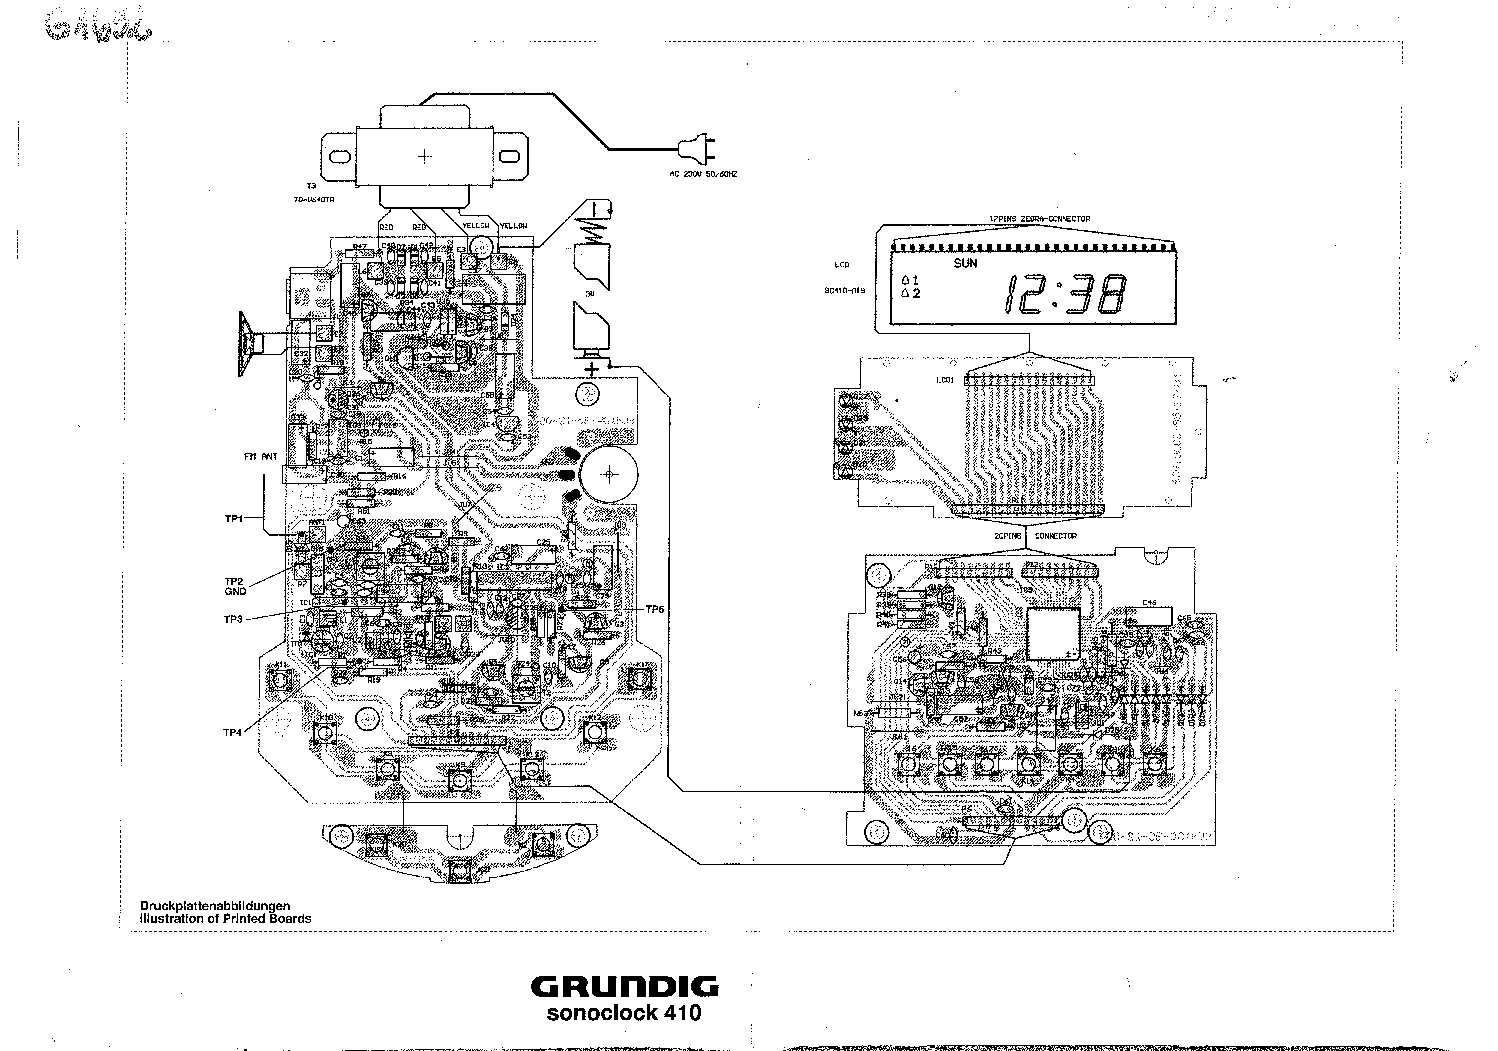 Grundig Sonoclock 410 Manual Wraplivin Wiring Diagram Workbook Pdf Using The Lexus Electrical